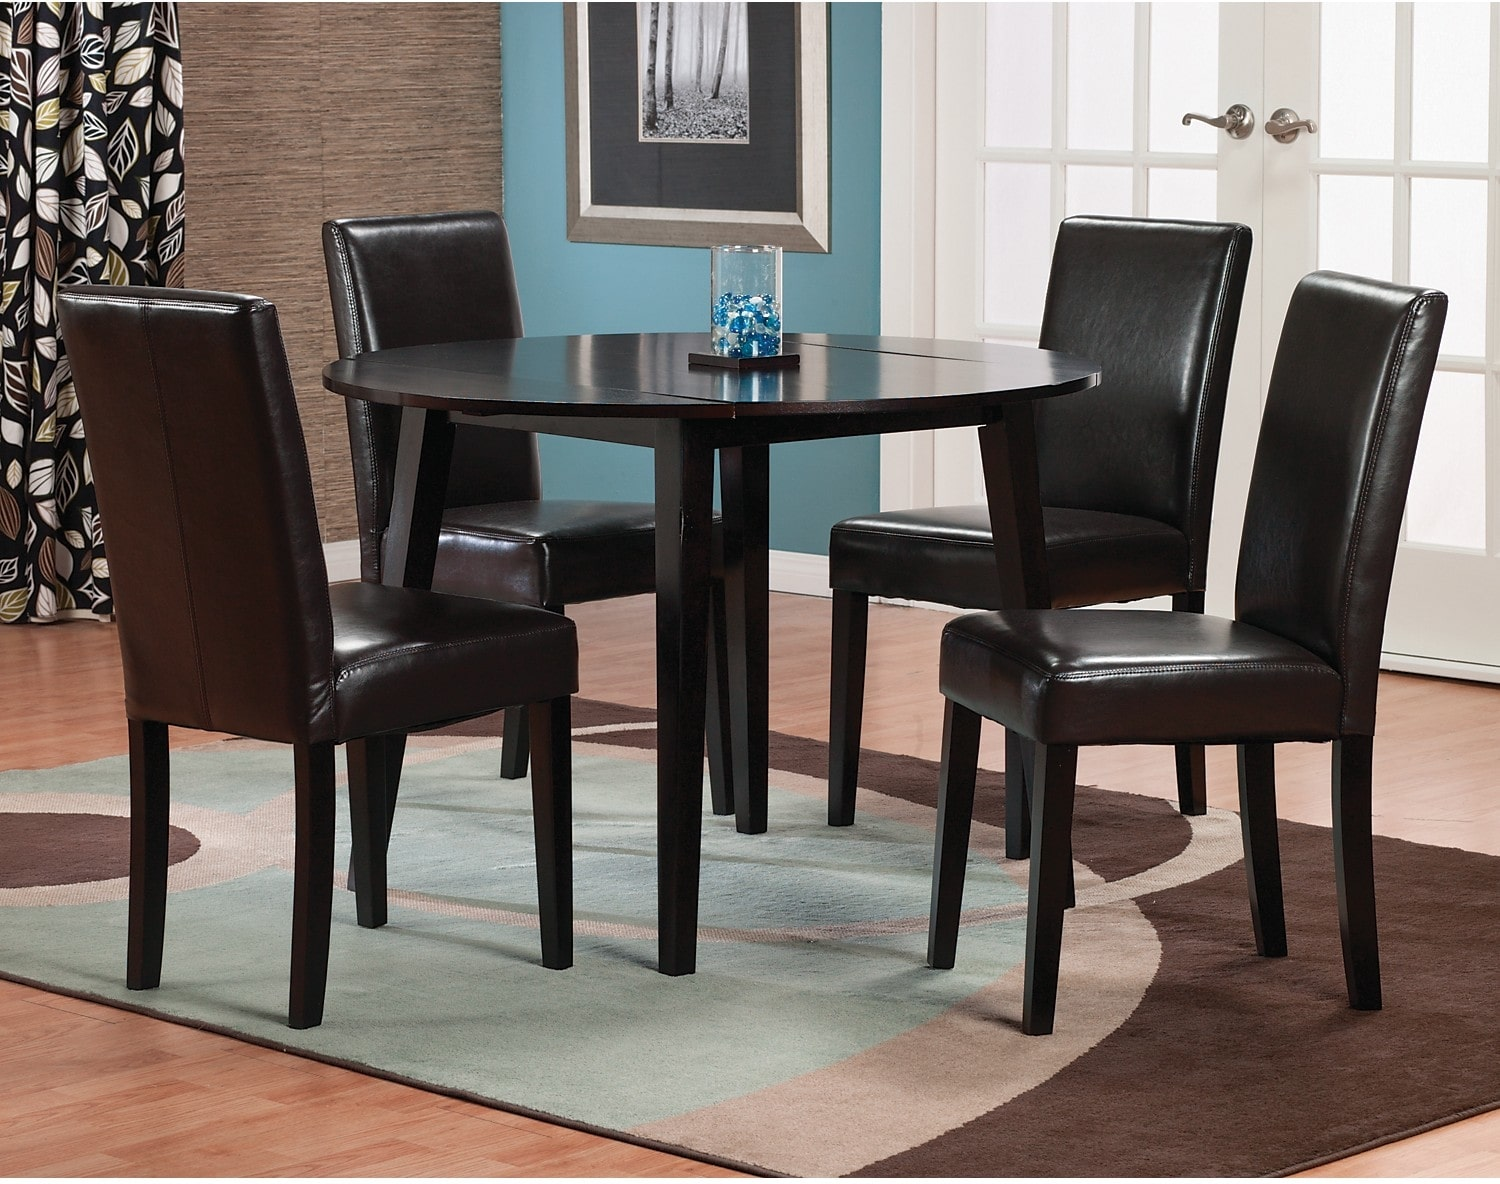 Table Dining Package With Brown Chairs Hover To Zoom